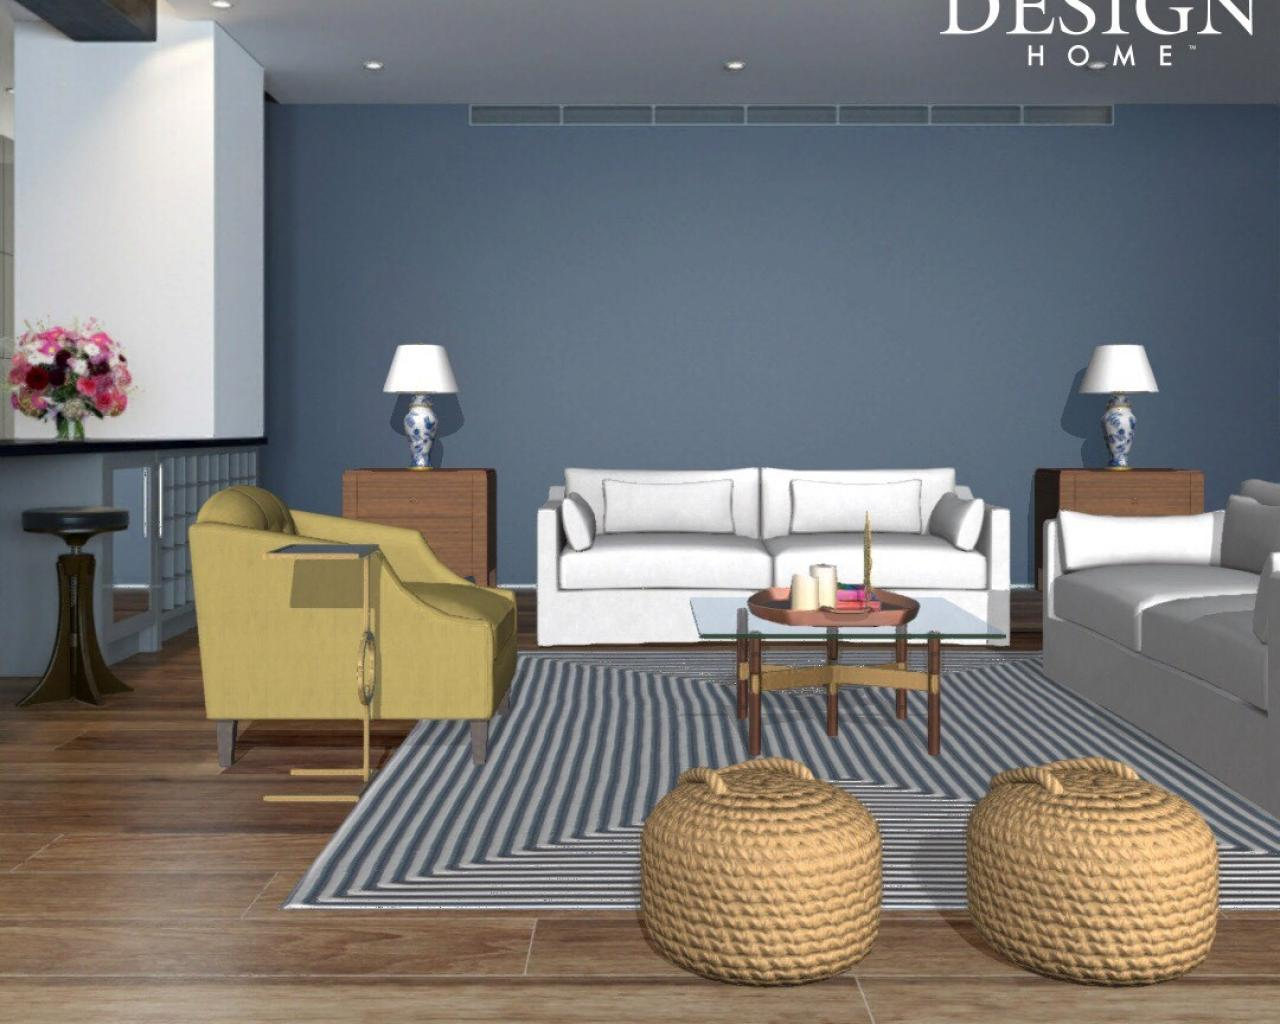 Be an interior designer with design home app hgtv 39 s Your home design